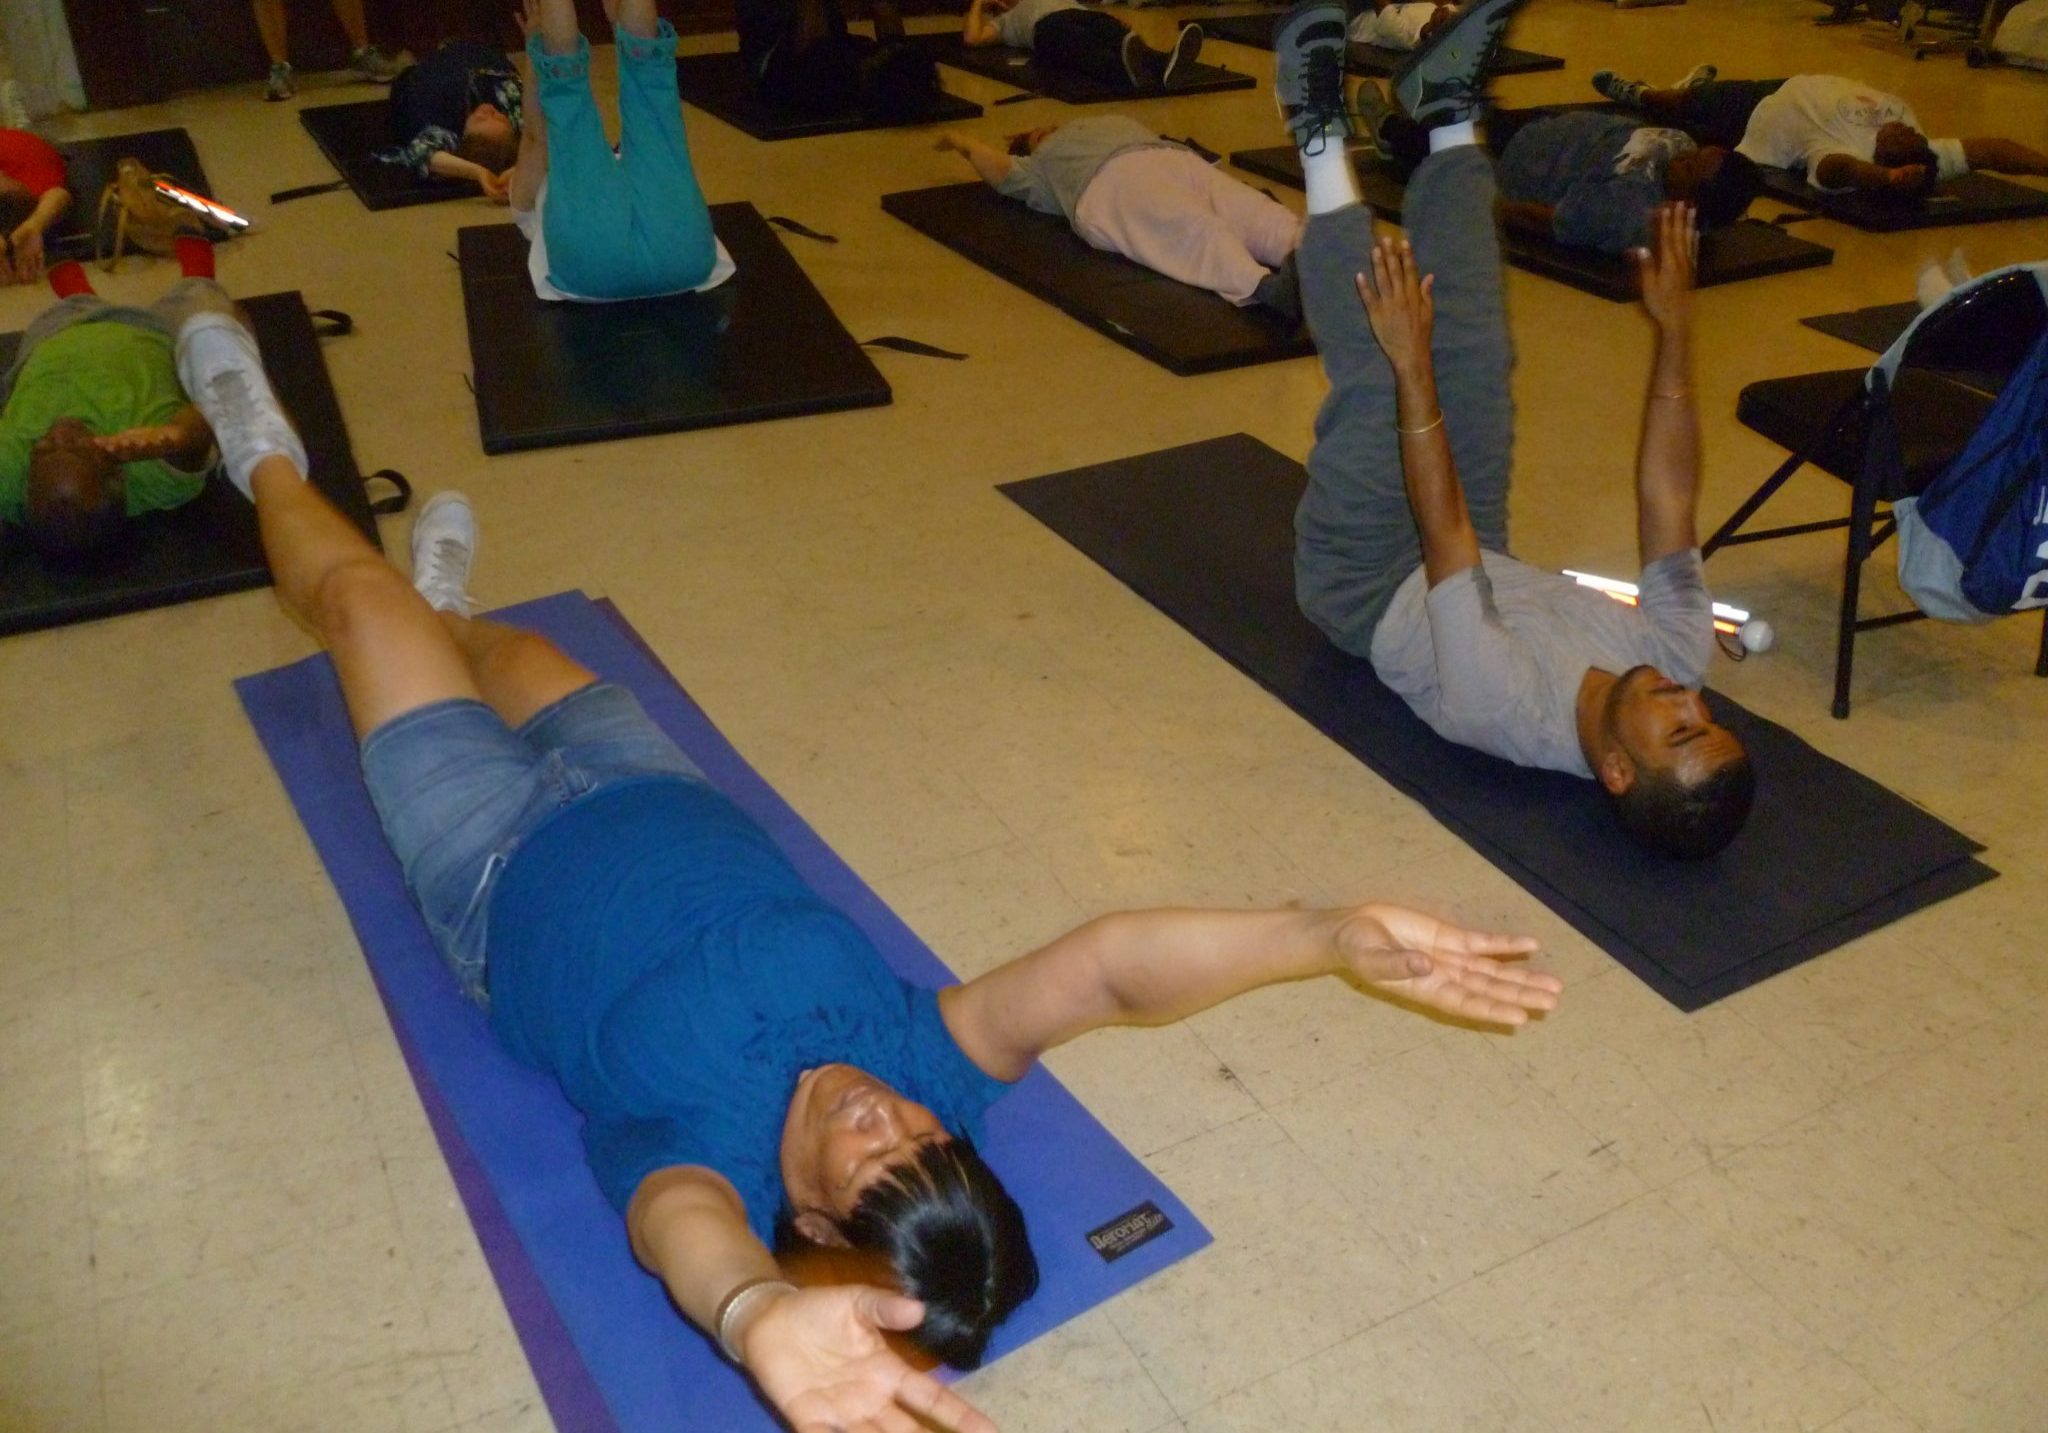 Fitness Explosion Class - people doing ab workouts on mats